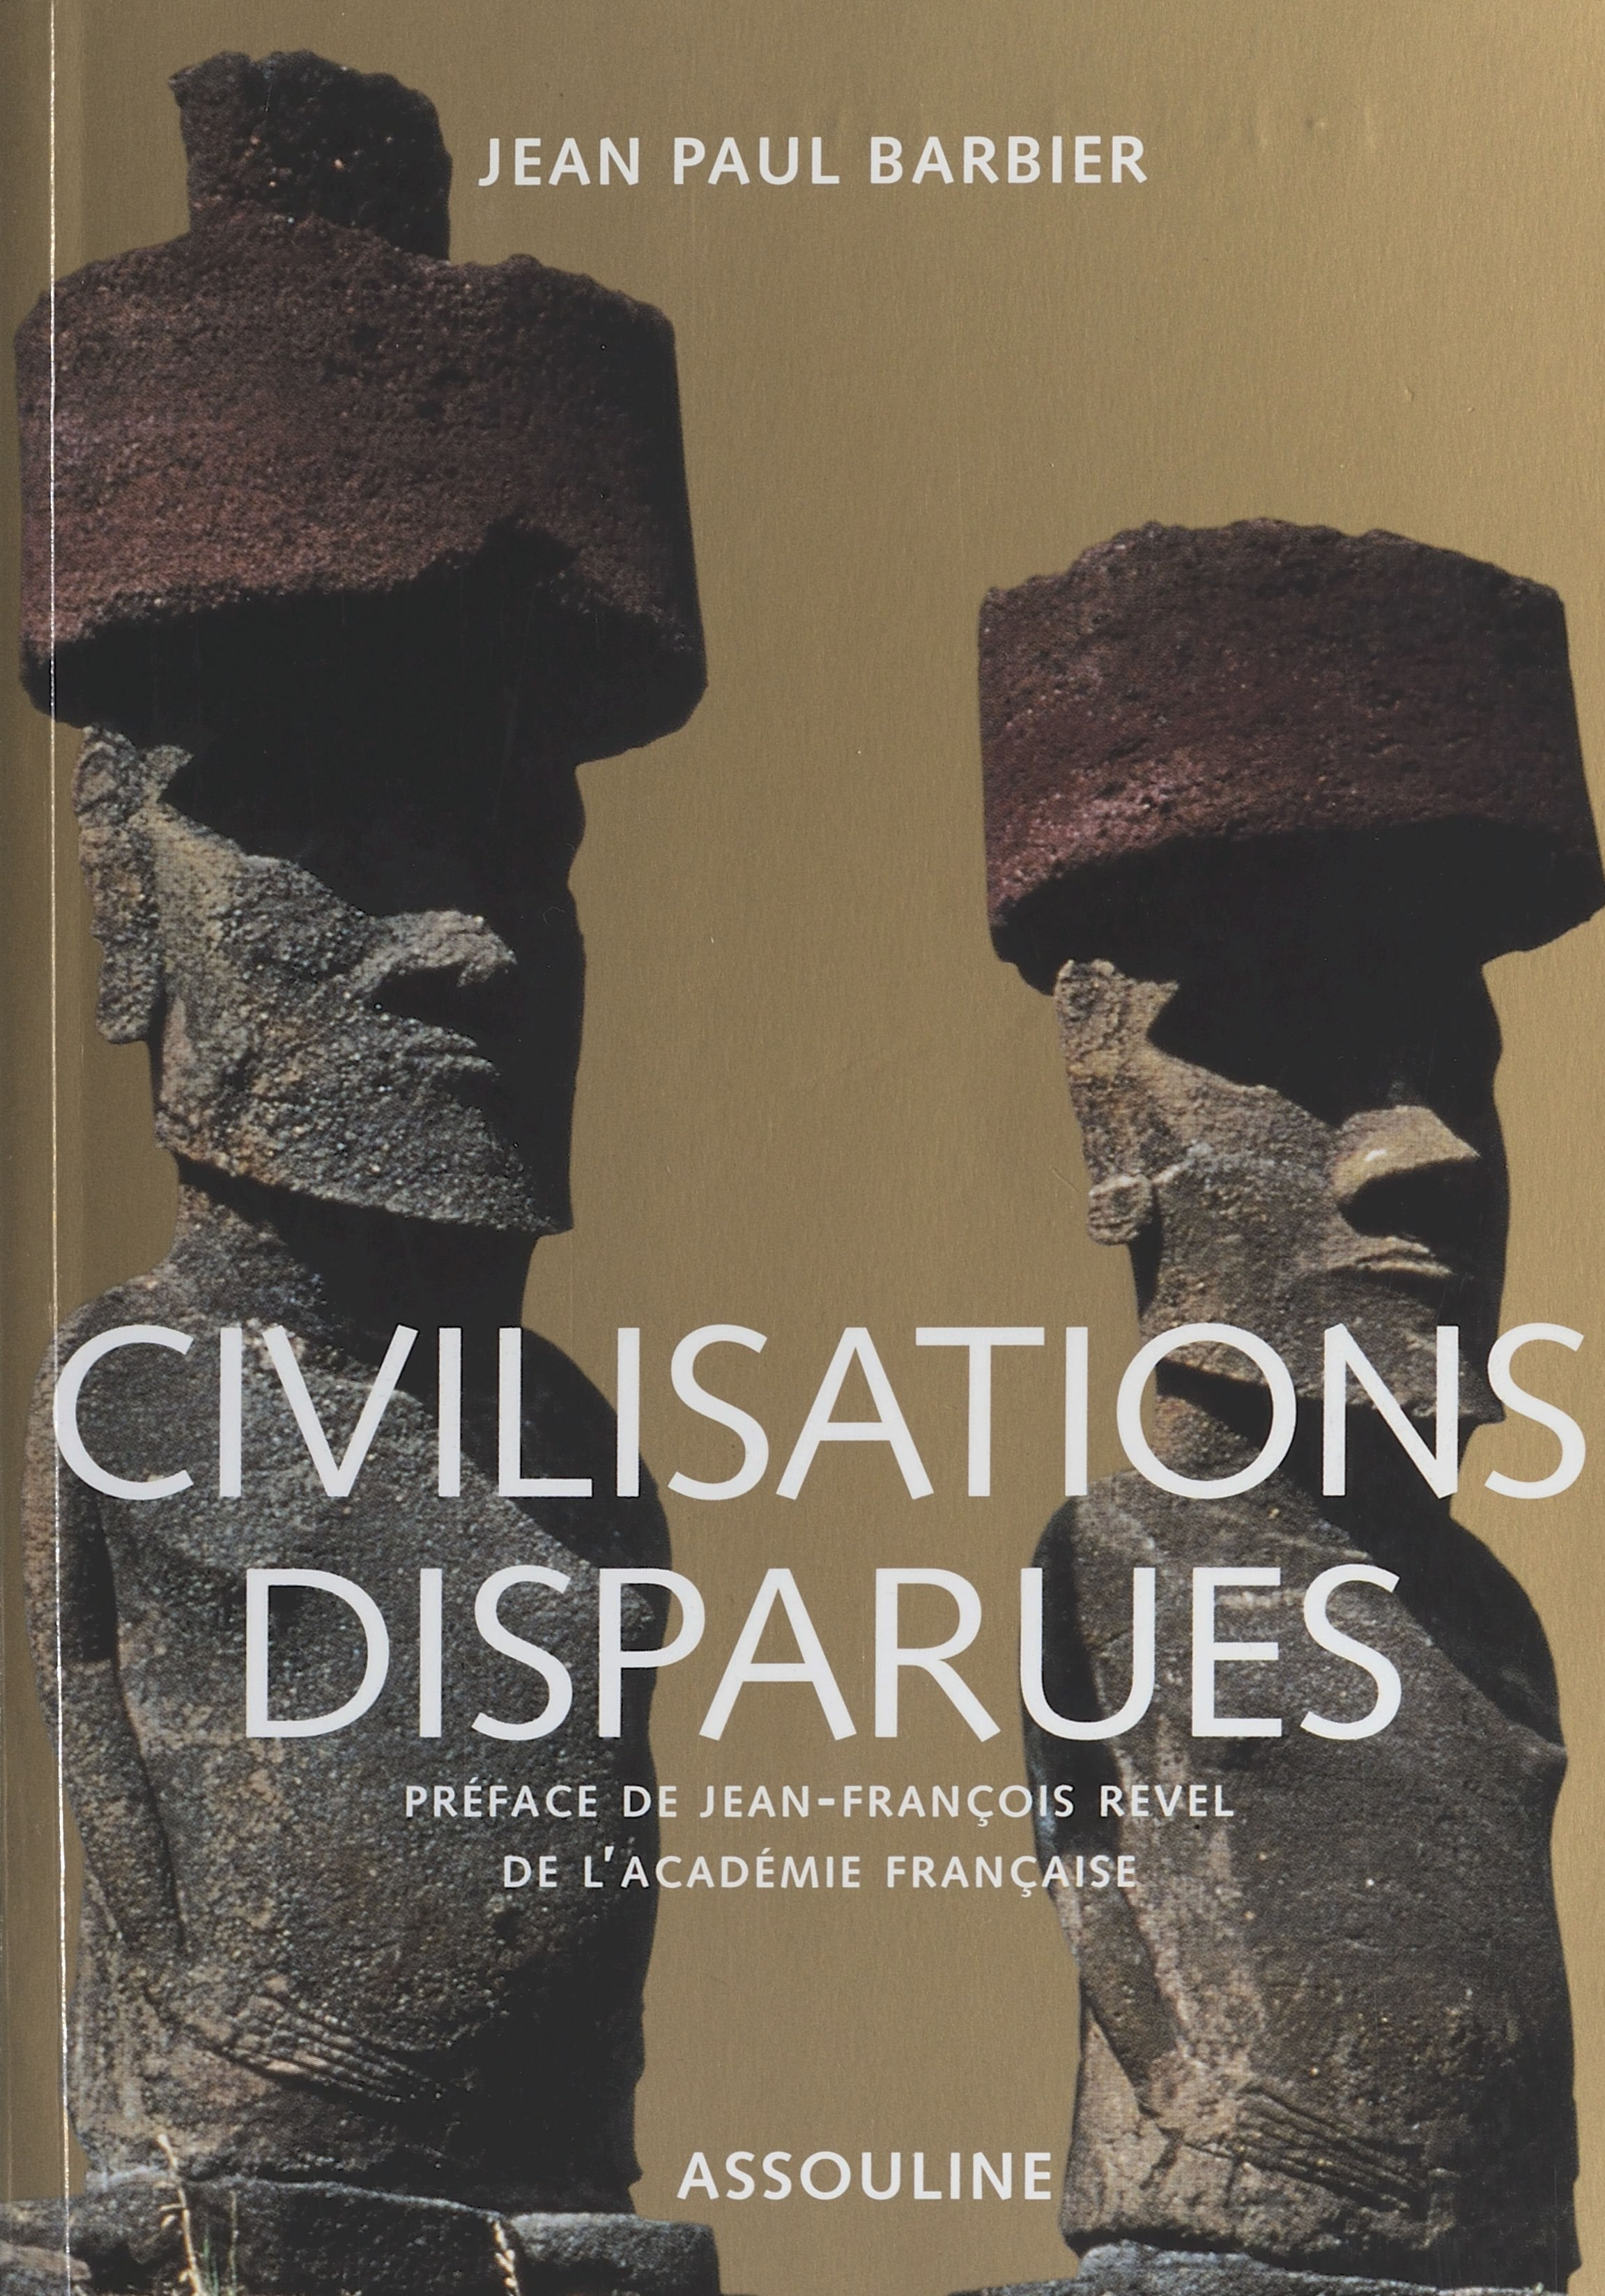 Civilisations disparues